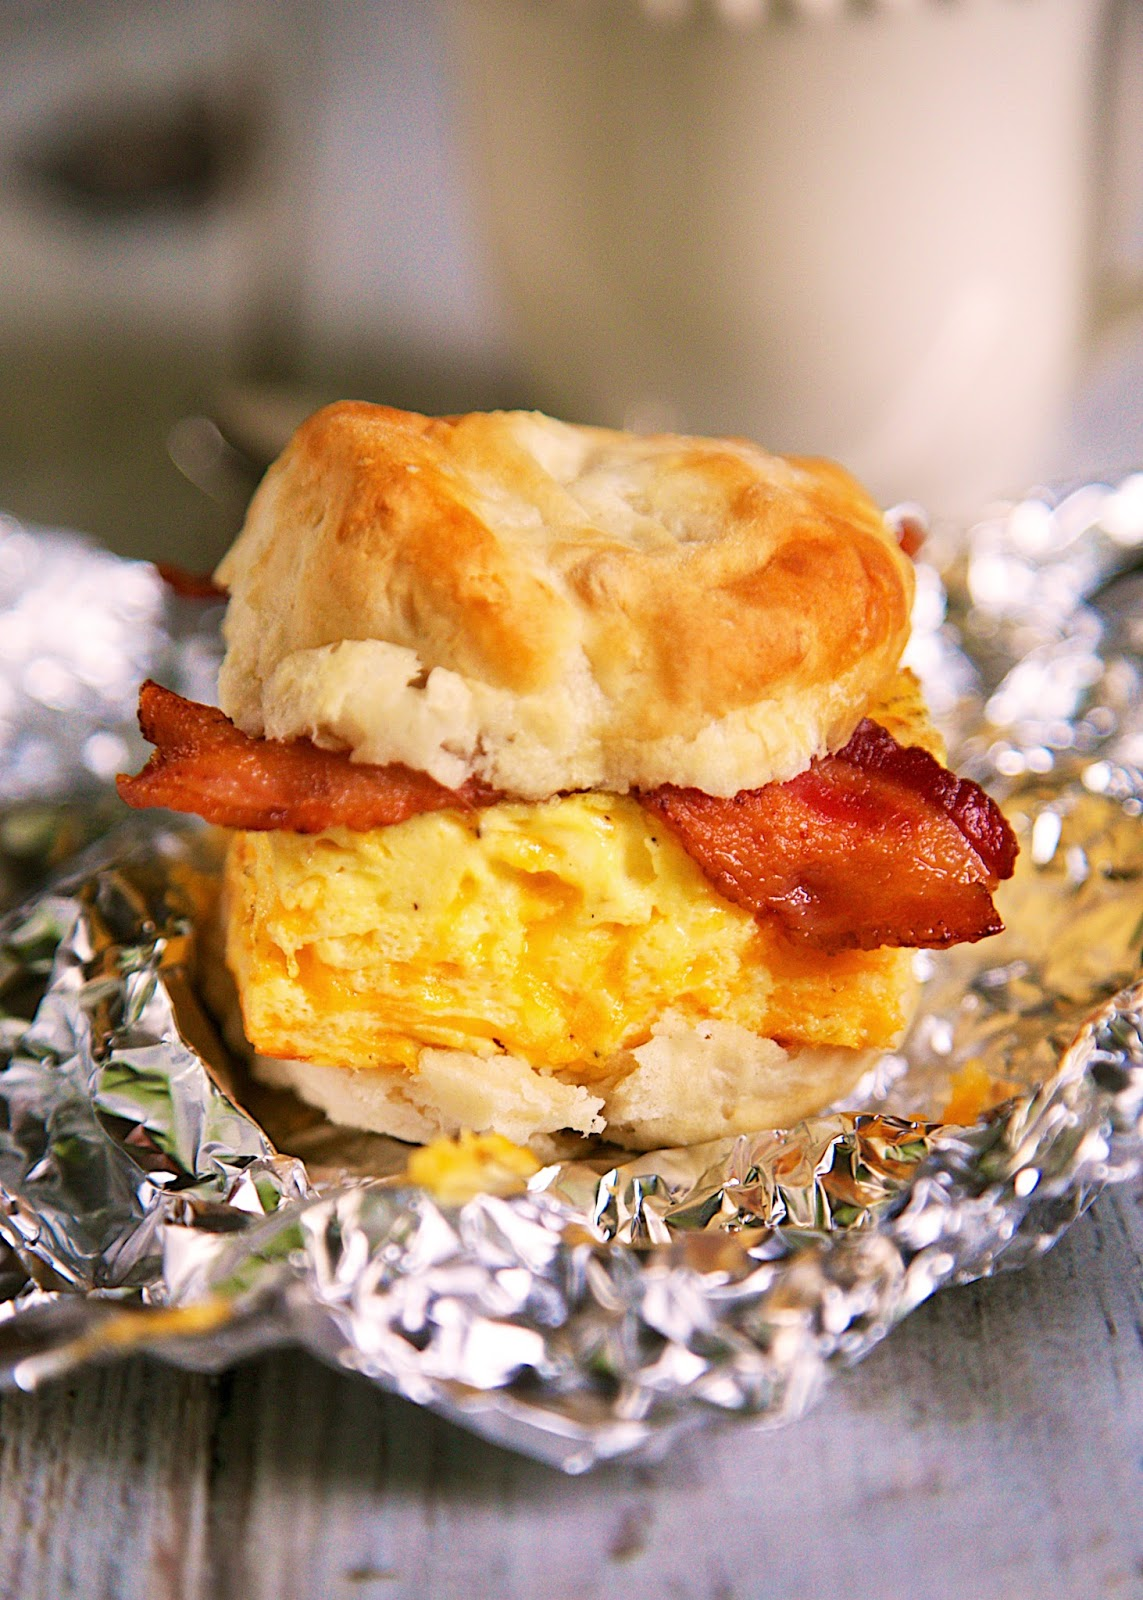 Biscuit Sandwich With Cheddar Spread, Canadian Bacon, And A Fried Egg ...